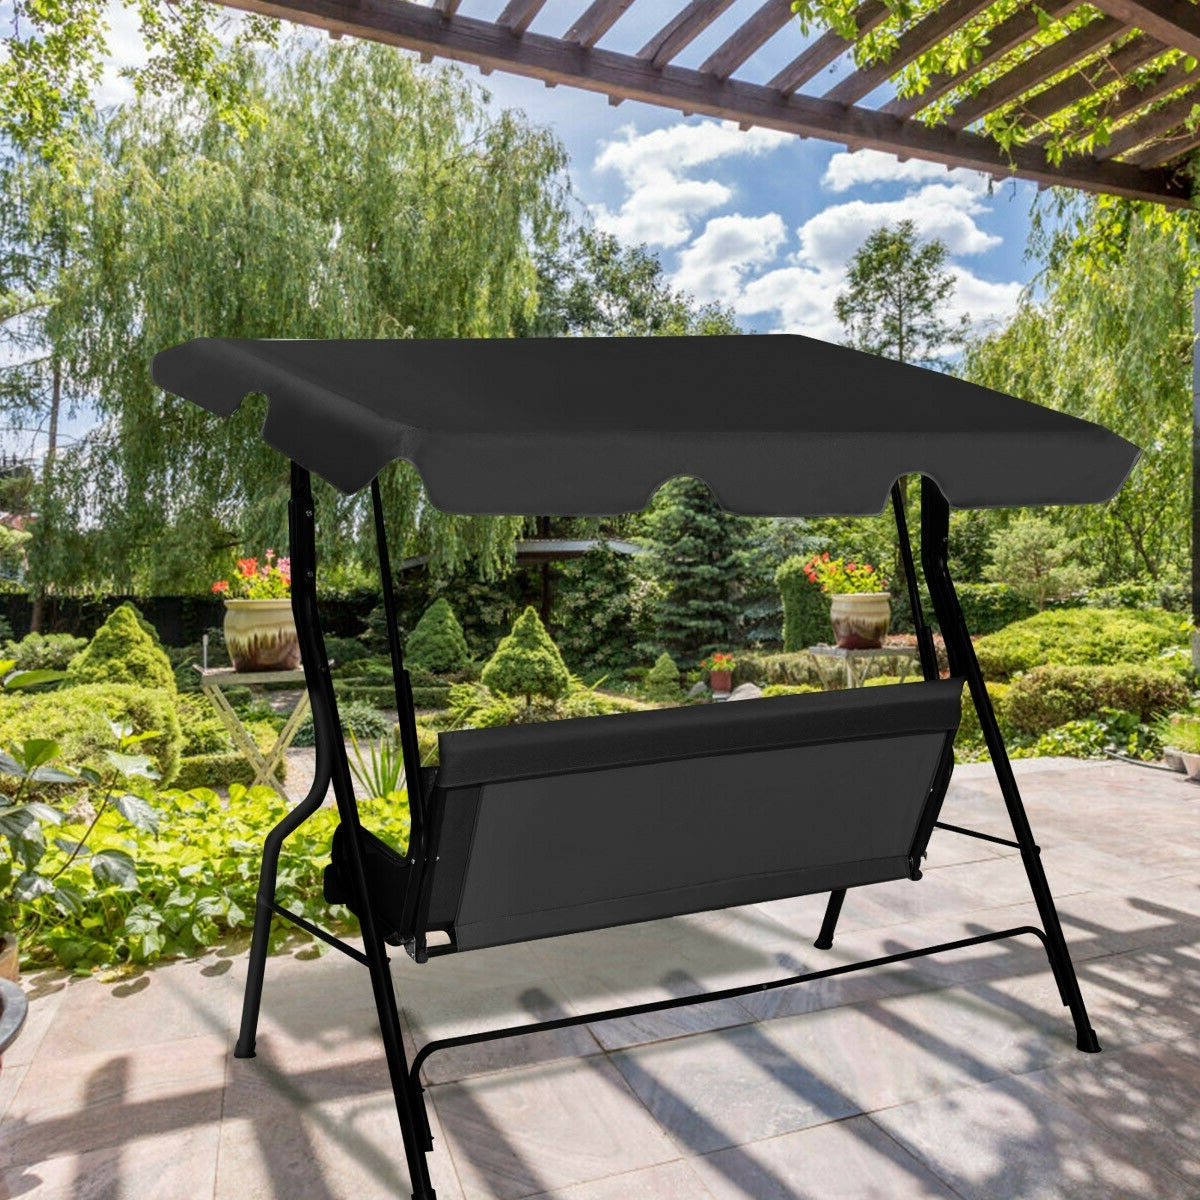 3 Seats Patio Canopy Swing Gliders Hammock Cushioned Steel Frame Pertaining To Most Current Costway 3 Seats Patio Canopy Swing Glider Hammock Cushioned Steel Frame Backyar Black (Gallery 4 of 25)